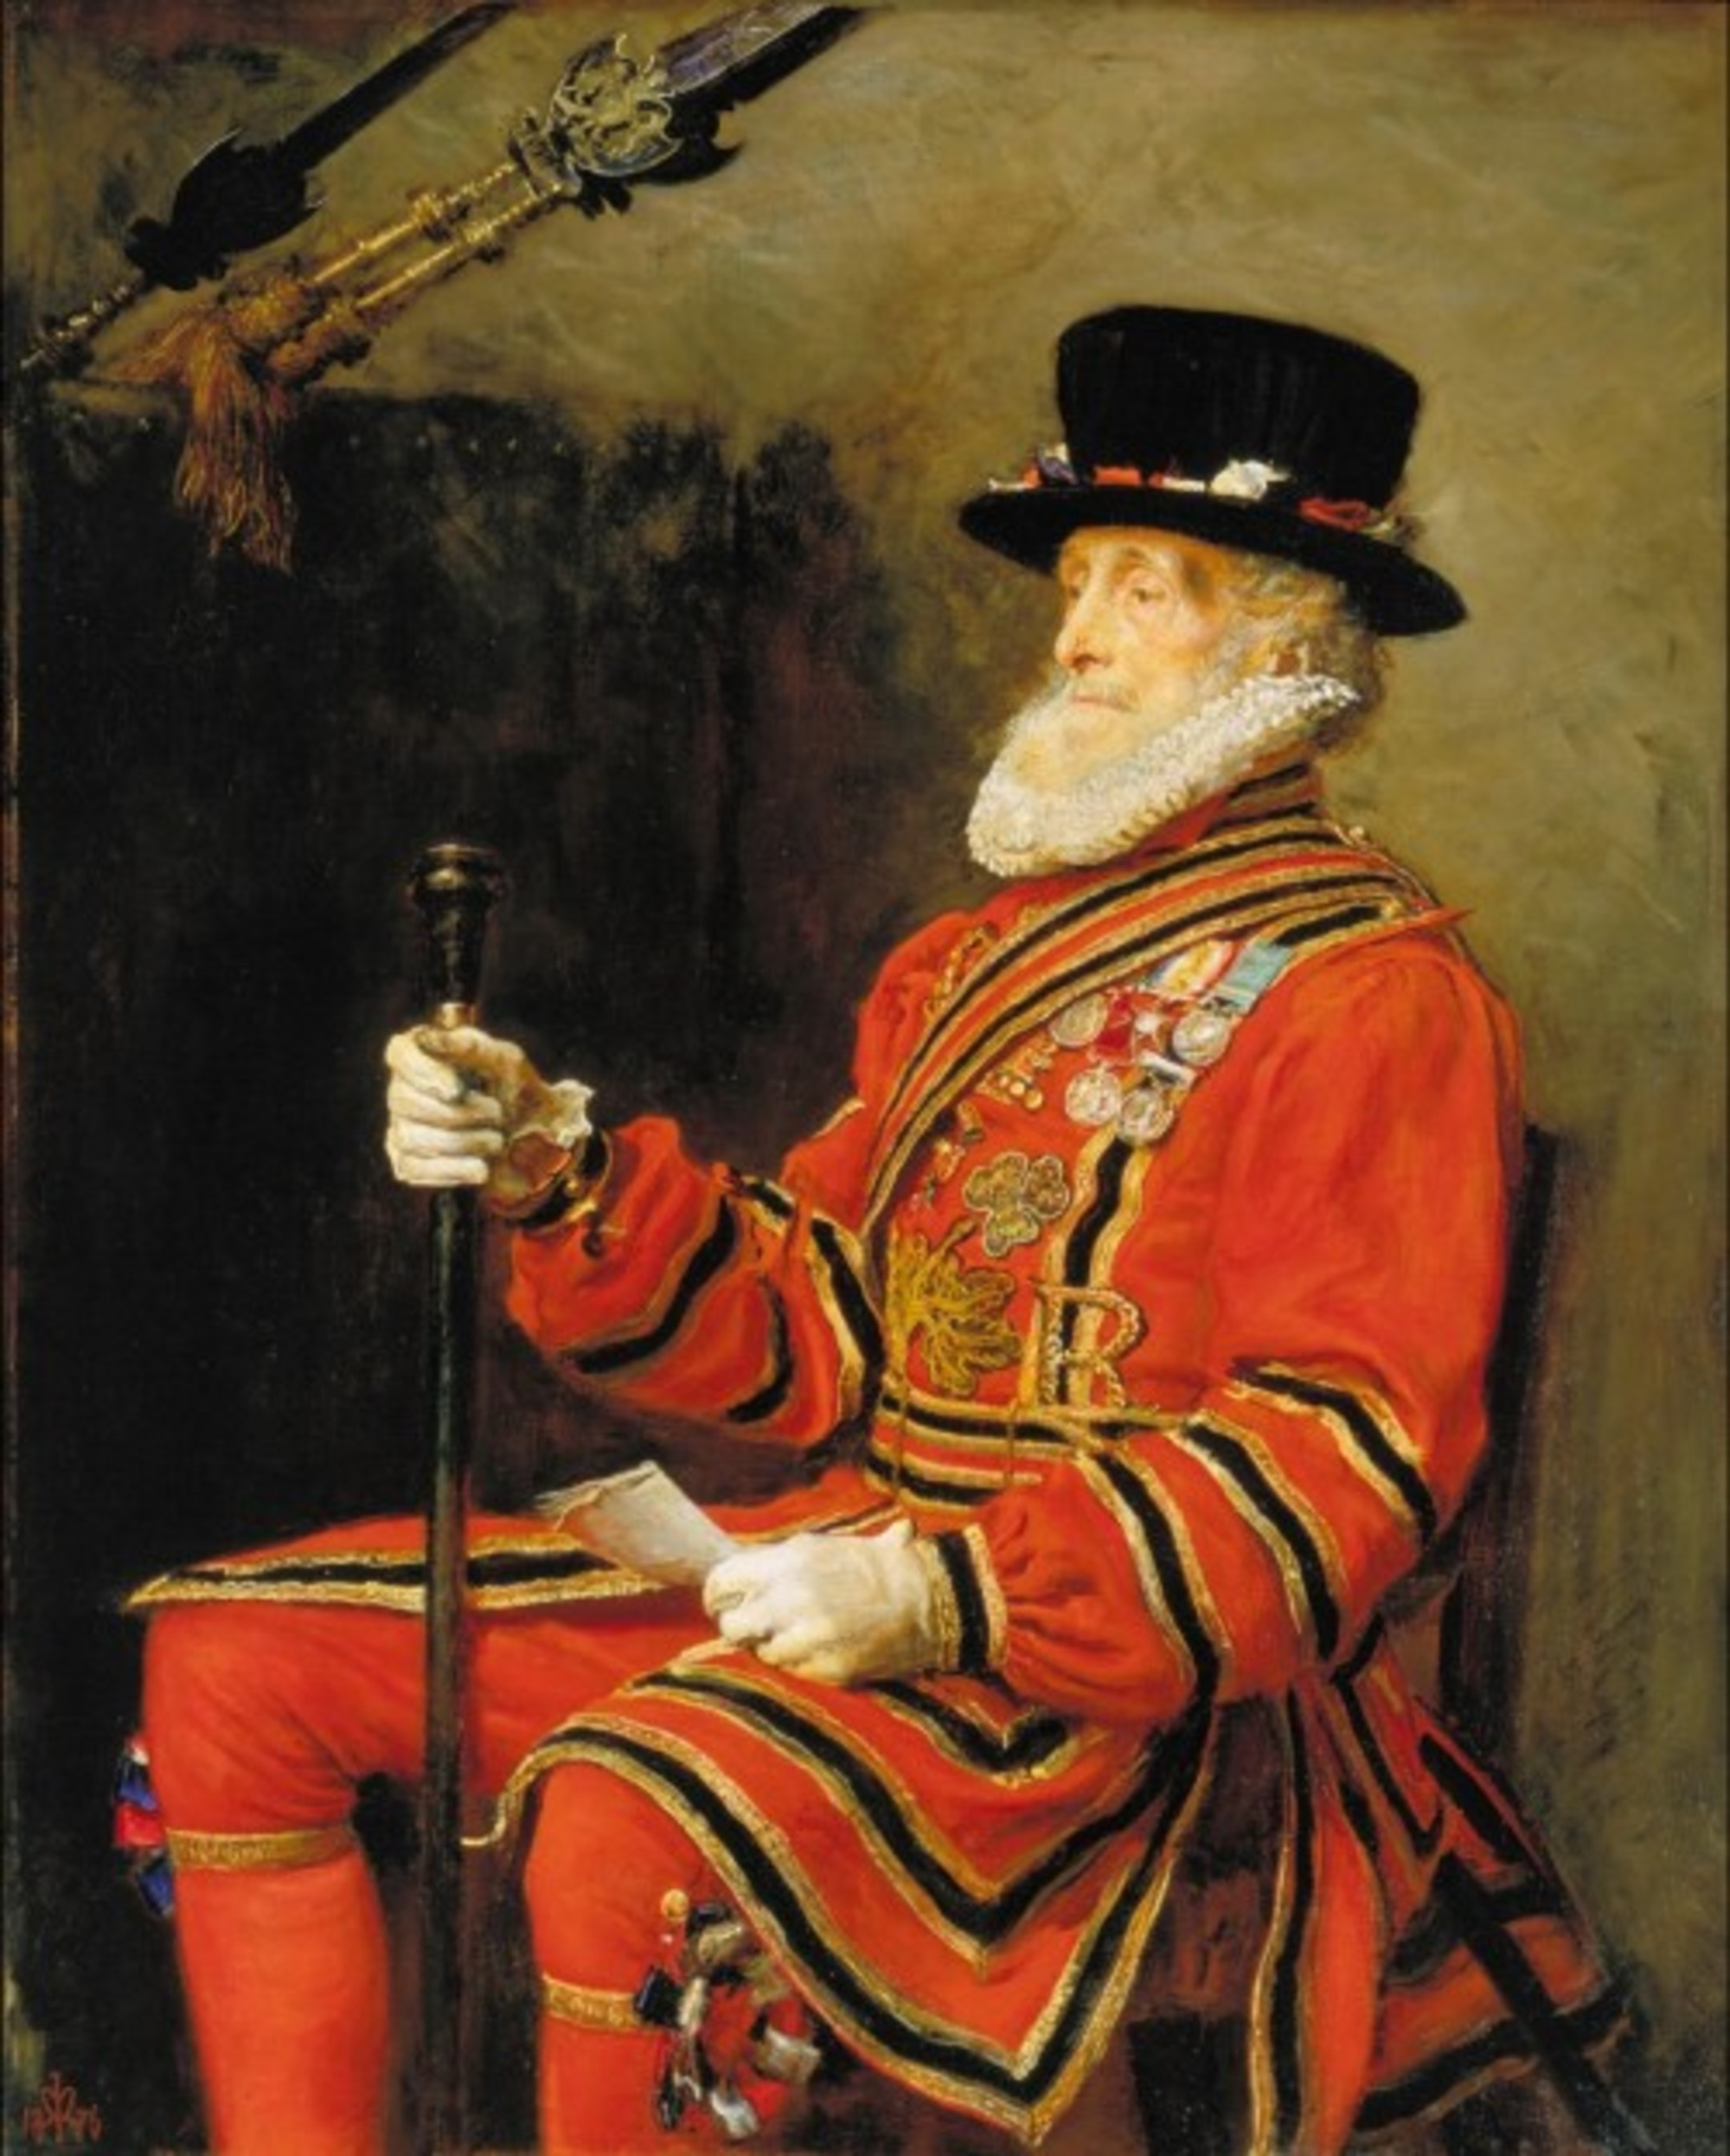 Sir-John-Everett-Millais---The-Yeoman-of-the-Guard-Tate-Britain.jpg